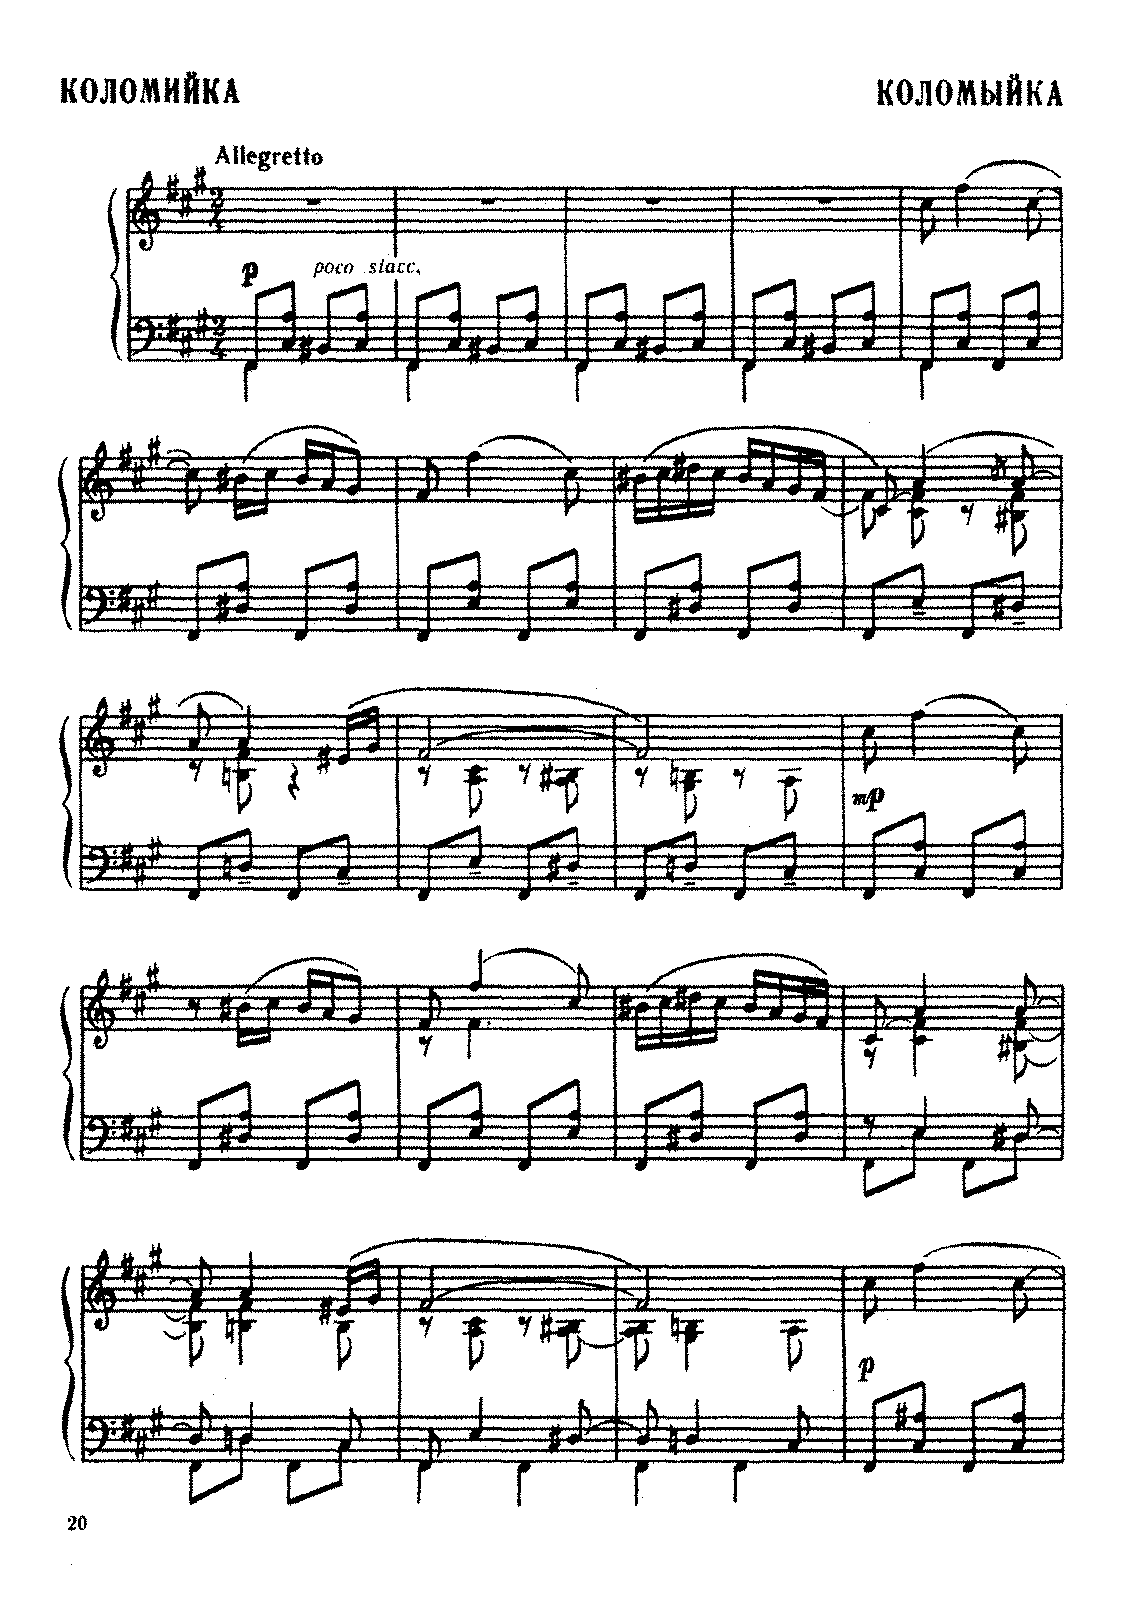 PMLP630020-Nizhankovsky, Nestor - Kolomyjka in F sharp minor.pdf